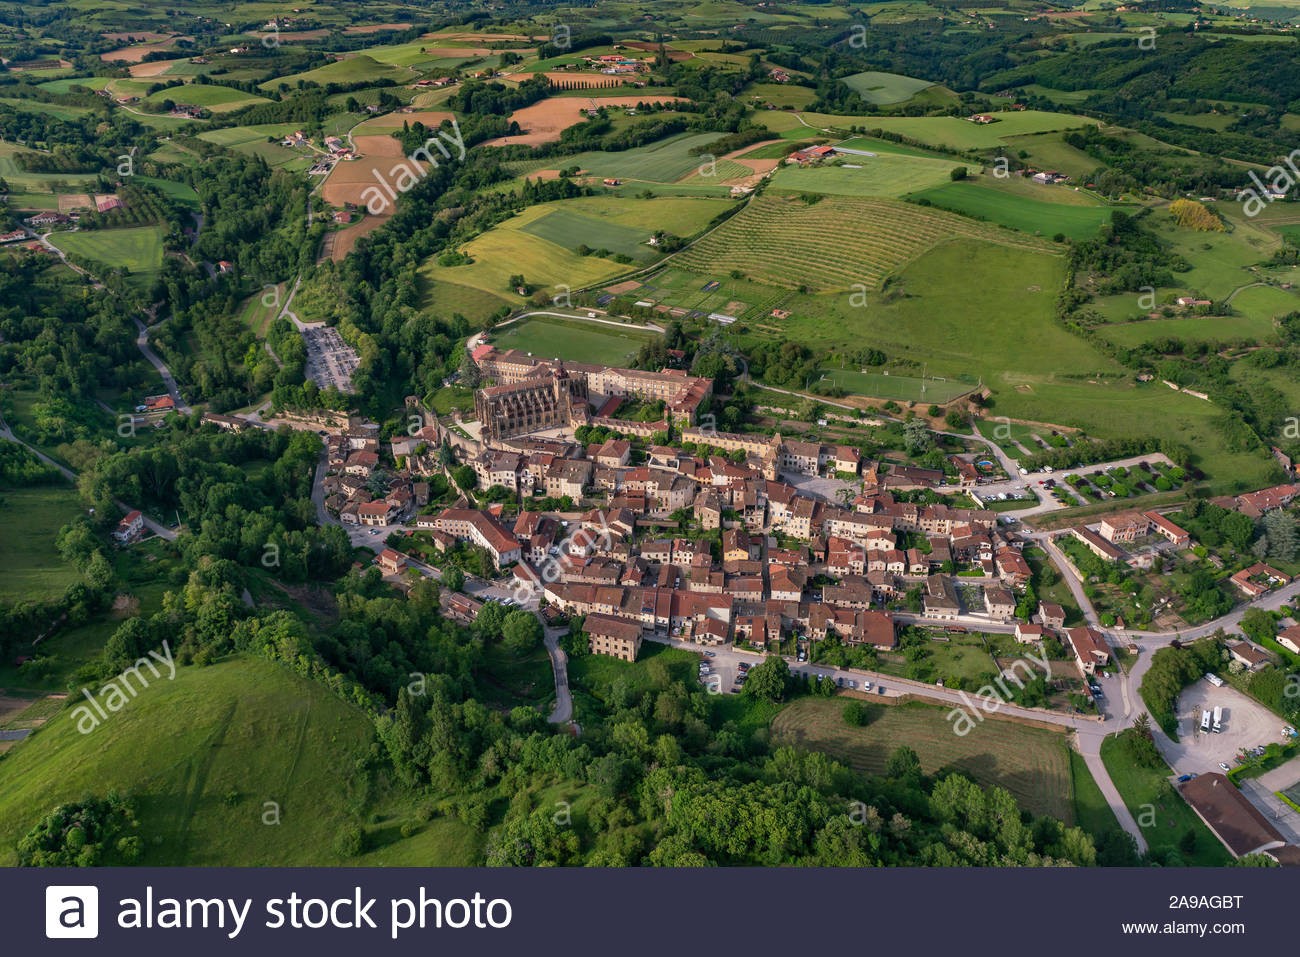 saint-antoine-labbaye-france-aerial-view